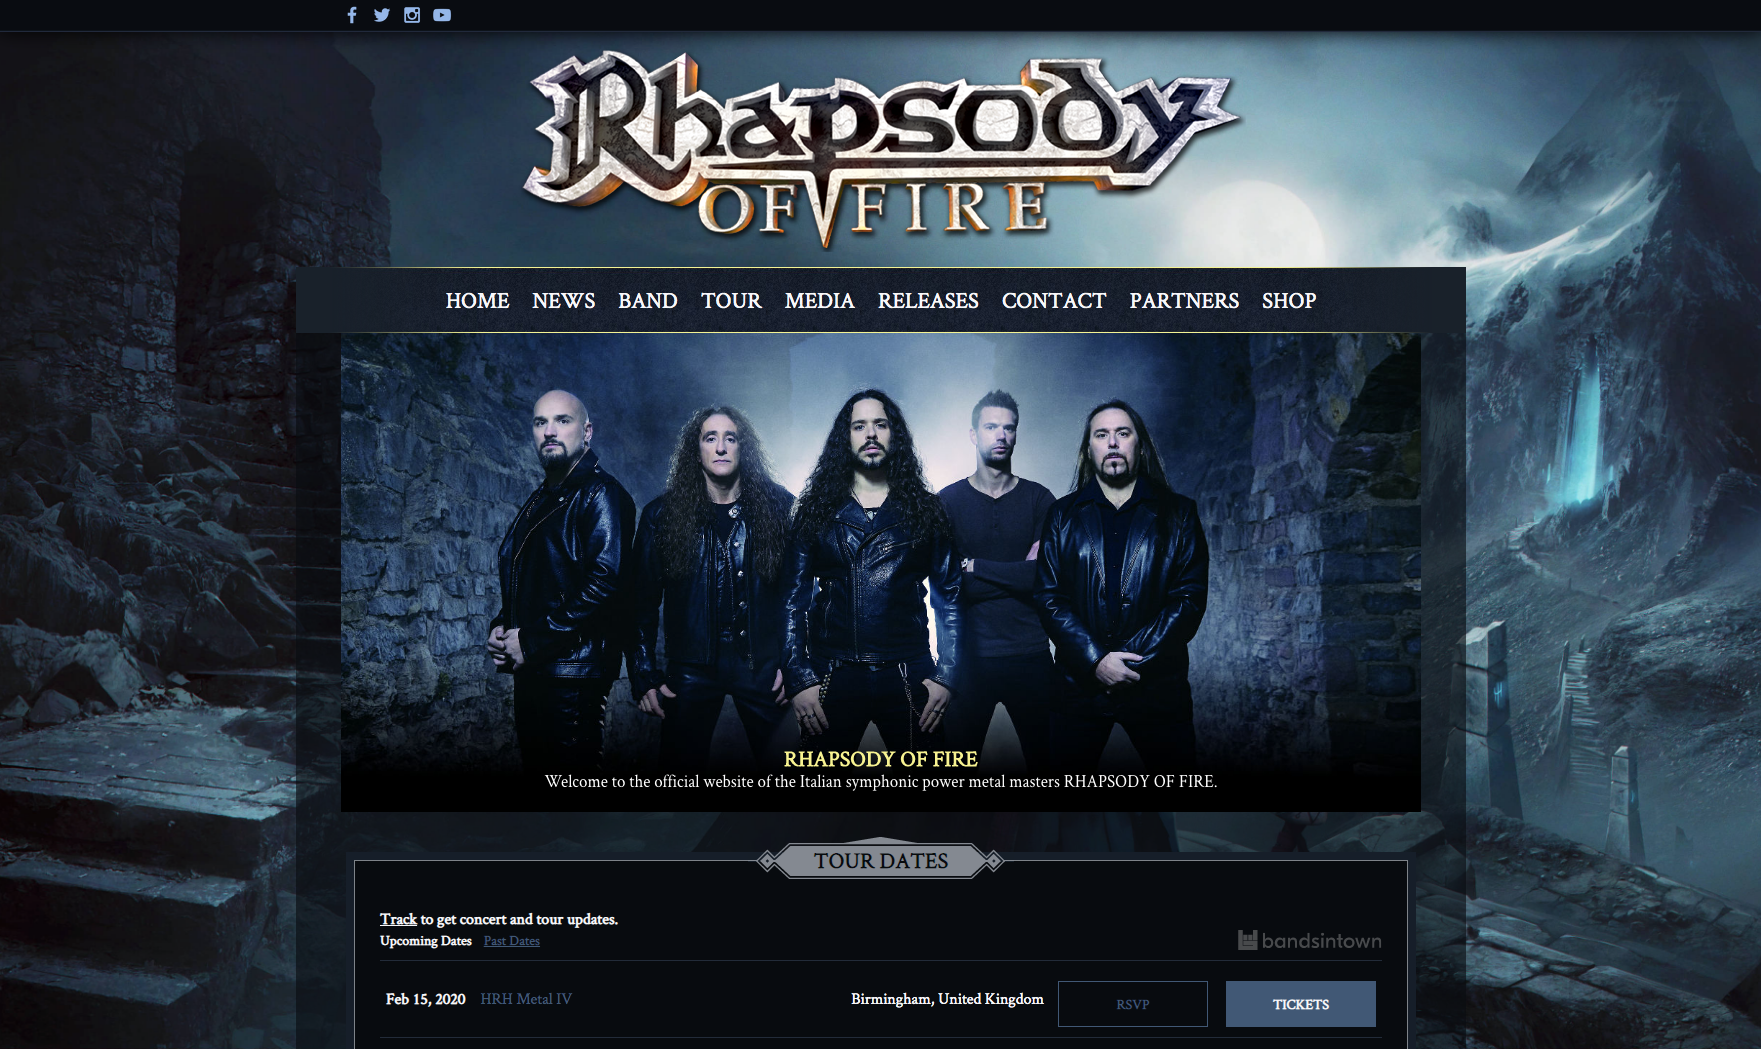 Sito Rhapsody Of Fire